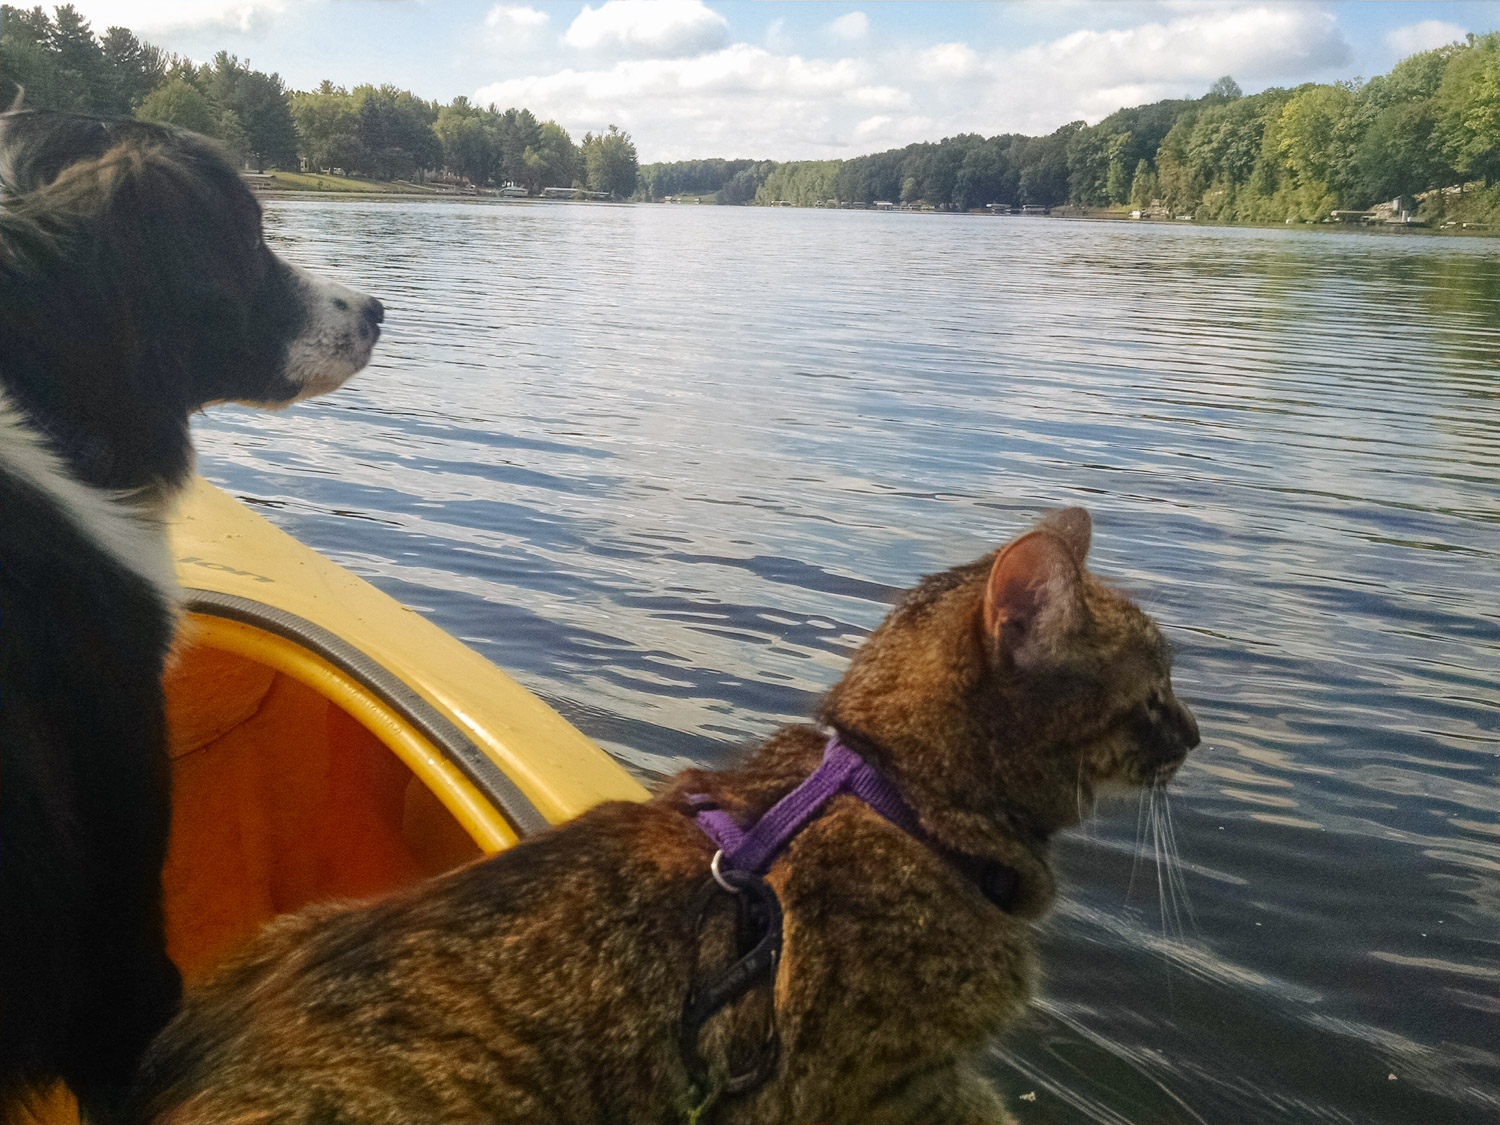 Josie the cat and her best friend, Mazie the dog, love to adventure together. (Photo: Erin Dush)